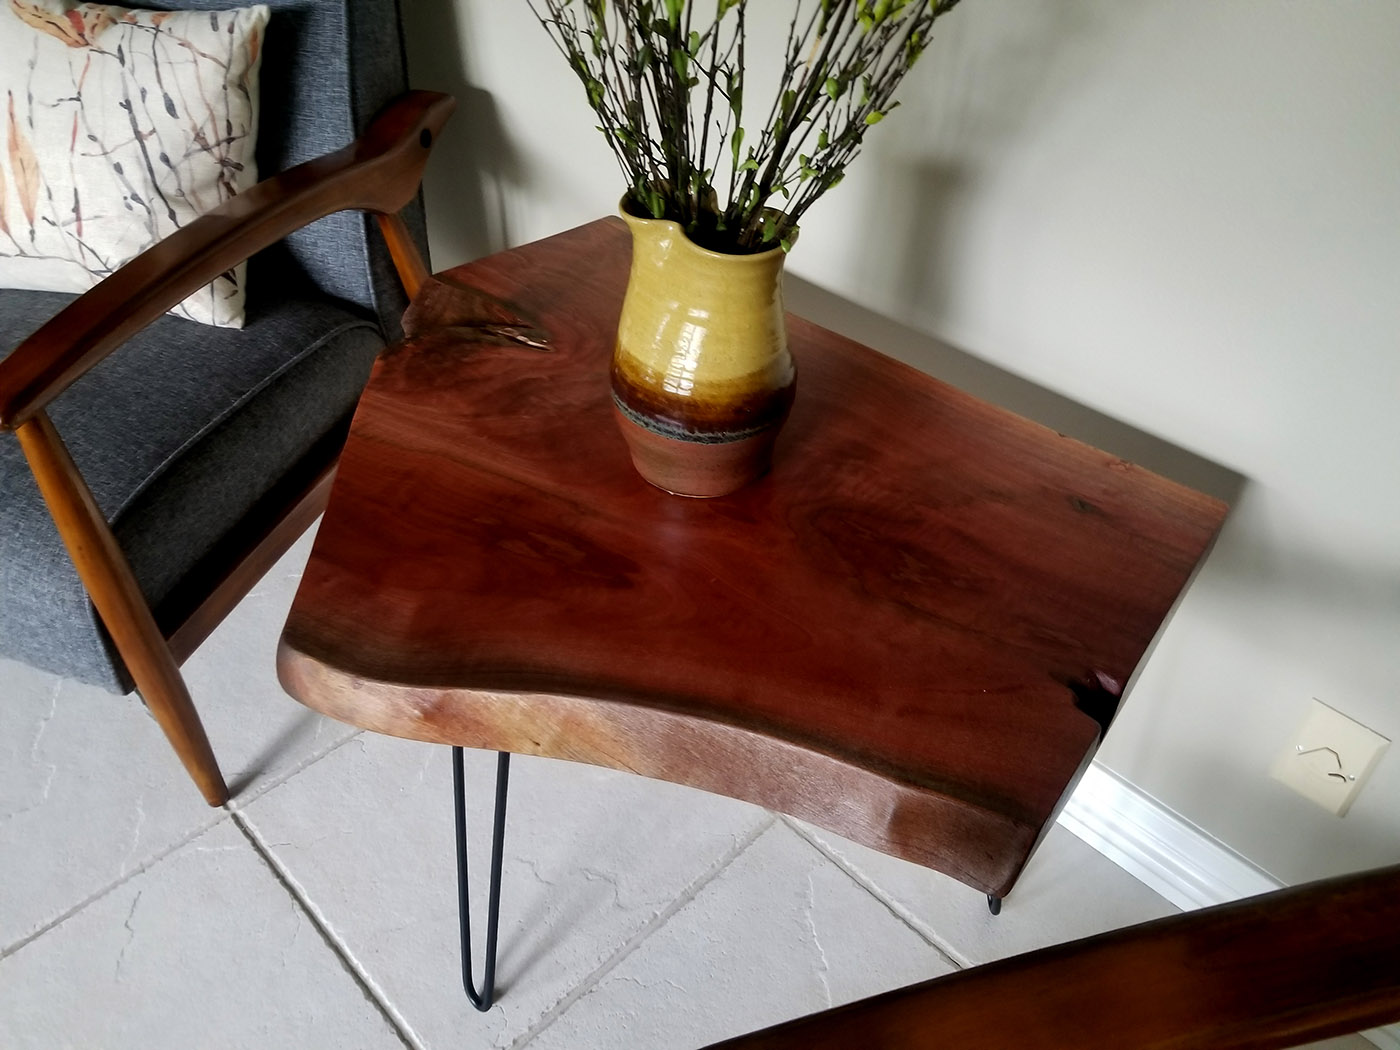 live edge accent table bear wood brown lucite pedestal chesterfield sofa bench end tables edmonton small lamps wisteria furniture umbrella tablecloth side pier candles modern